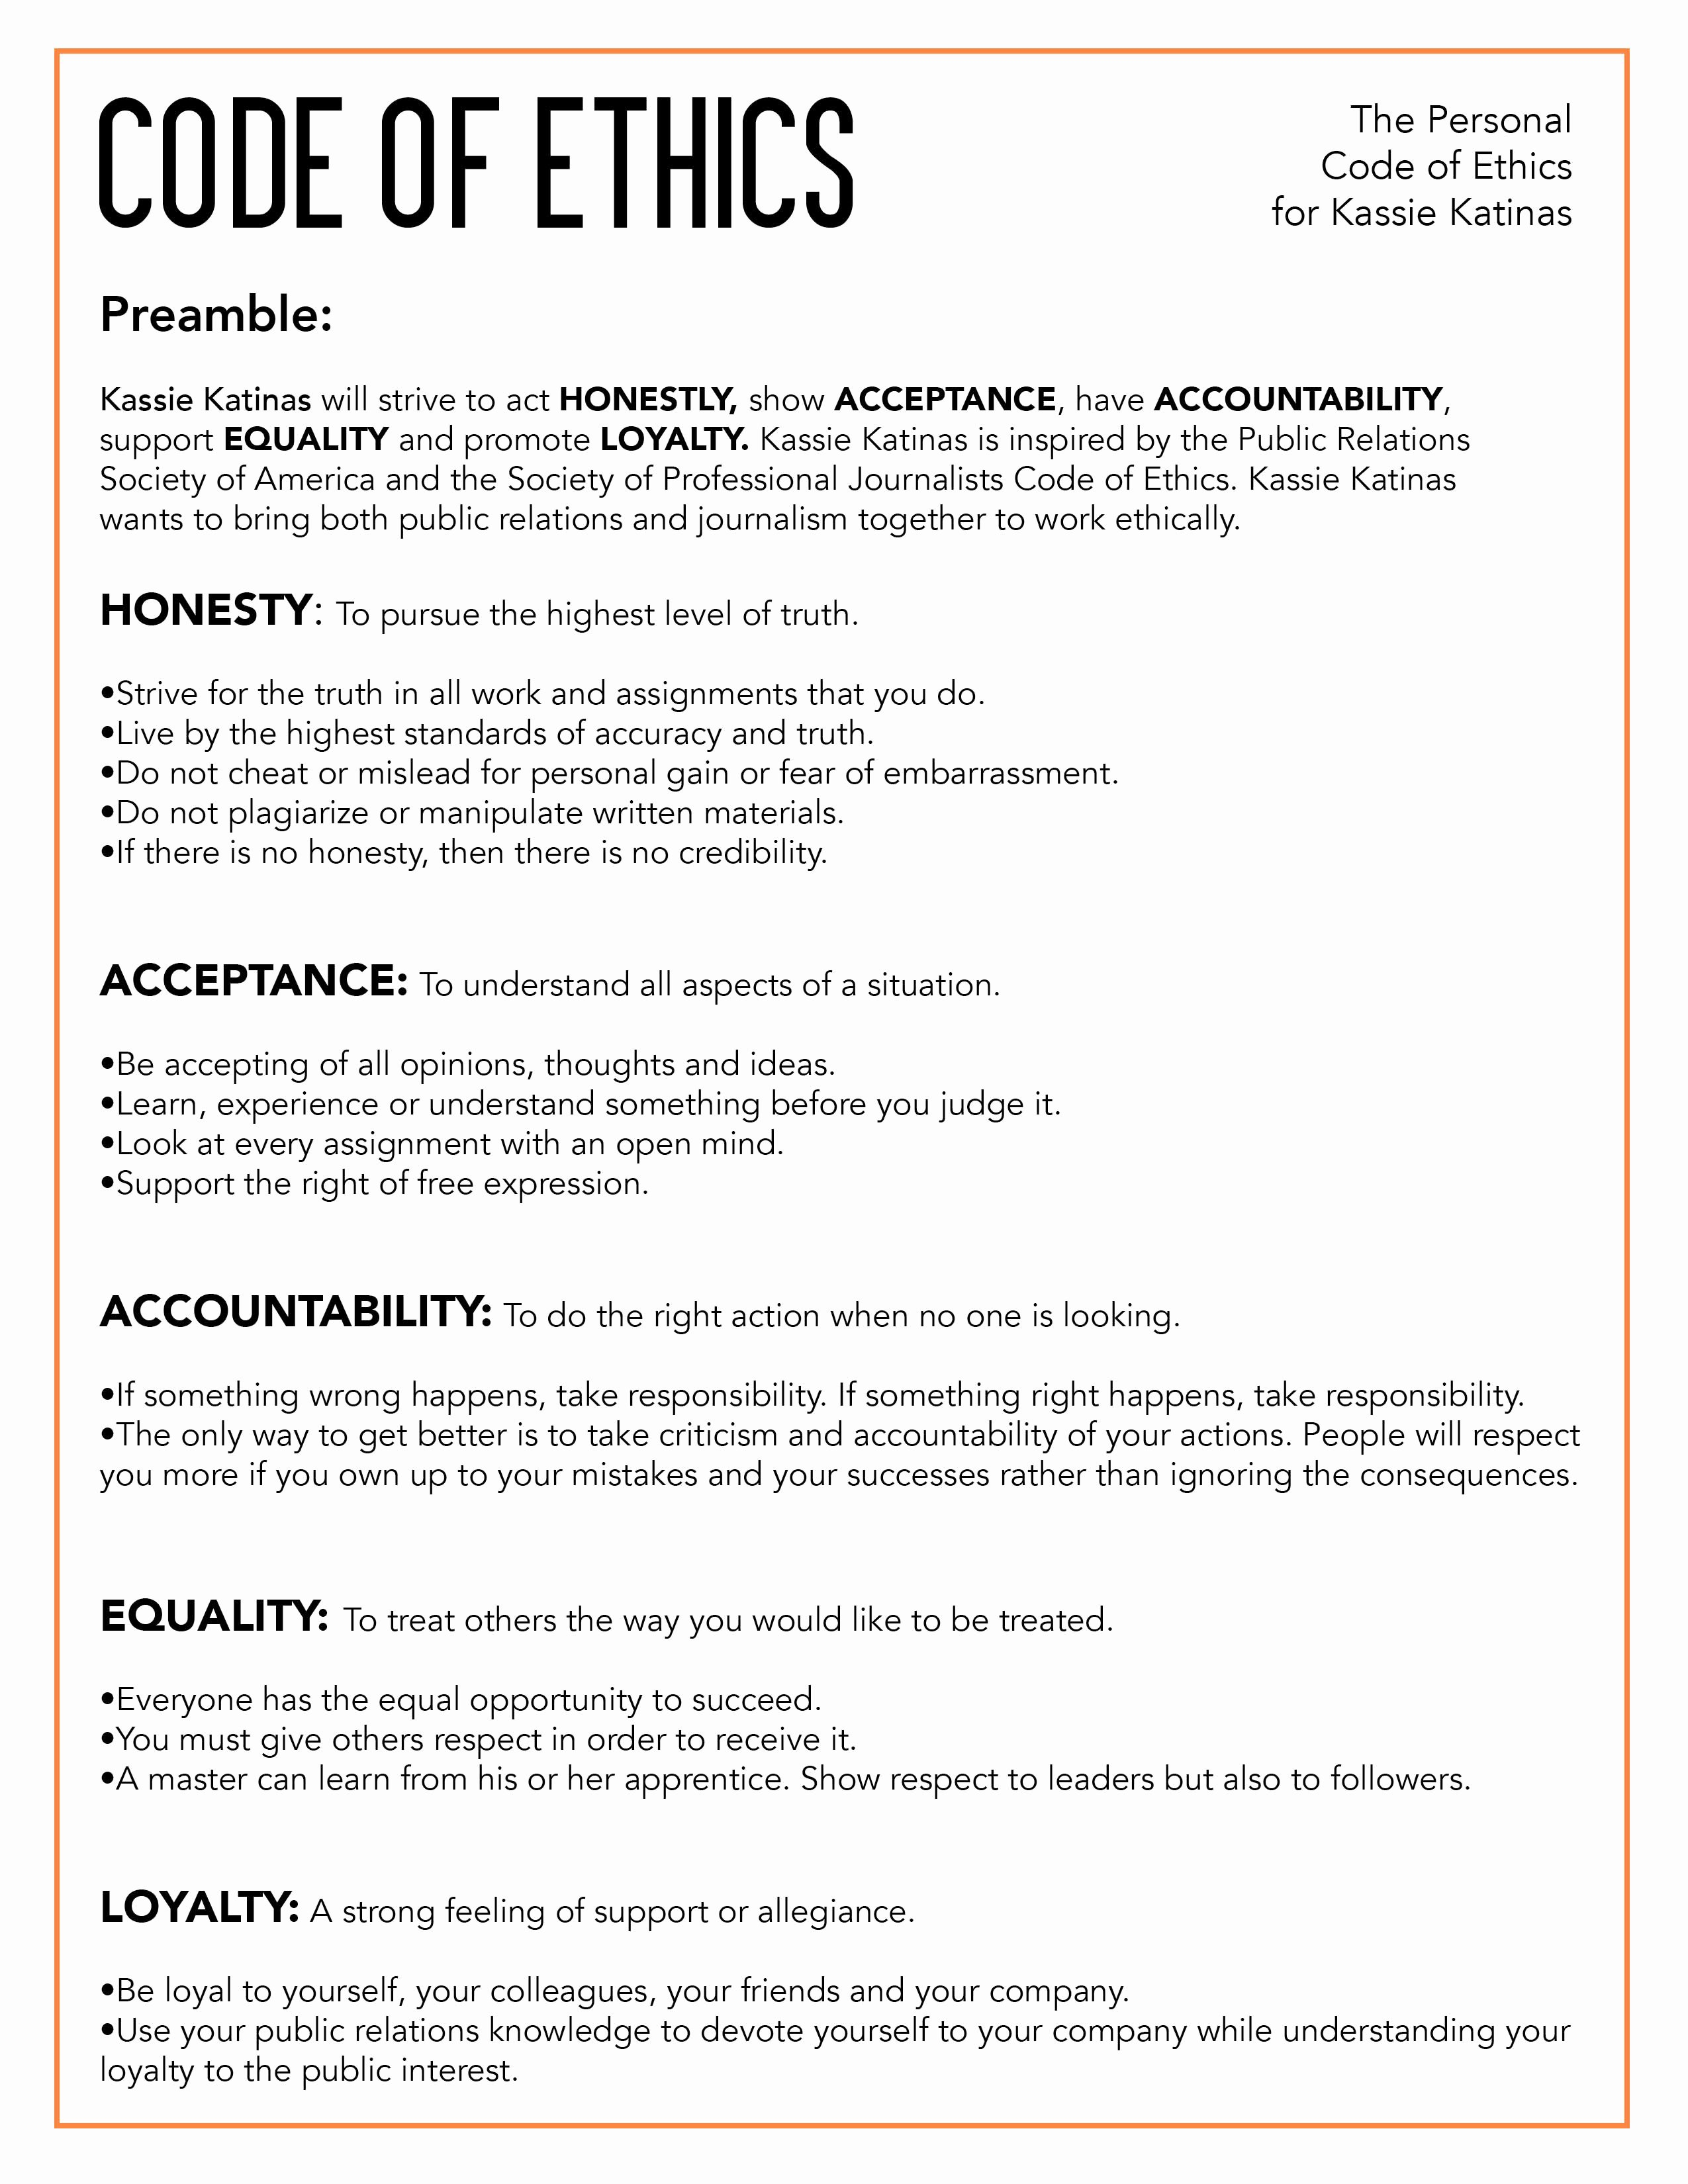 Workplace Code Of Conduct Template New Graphic Design – Kassie Katinas